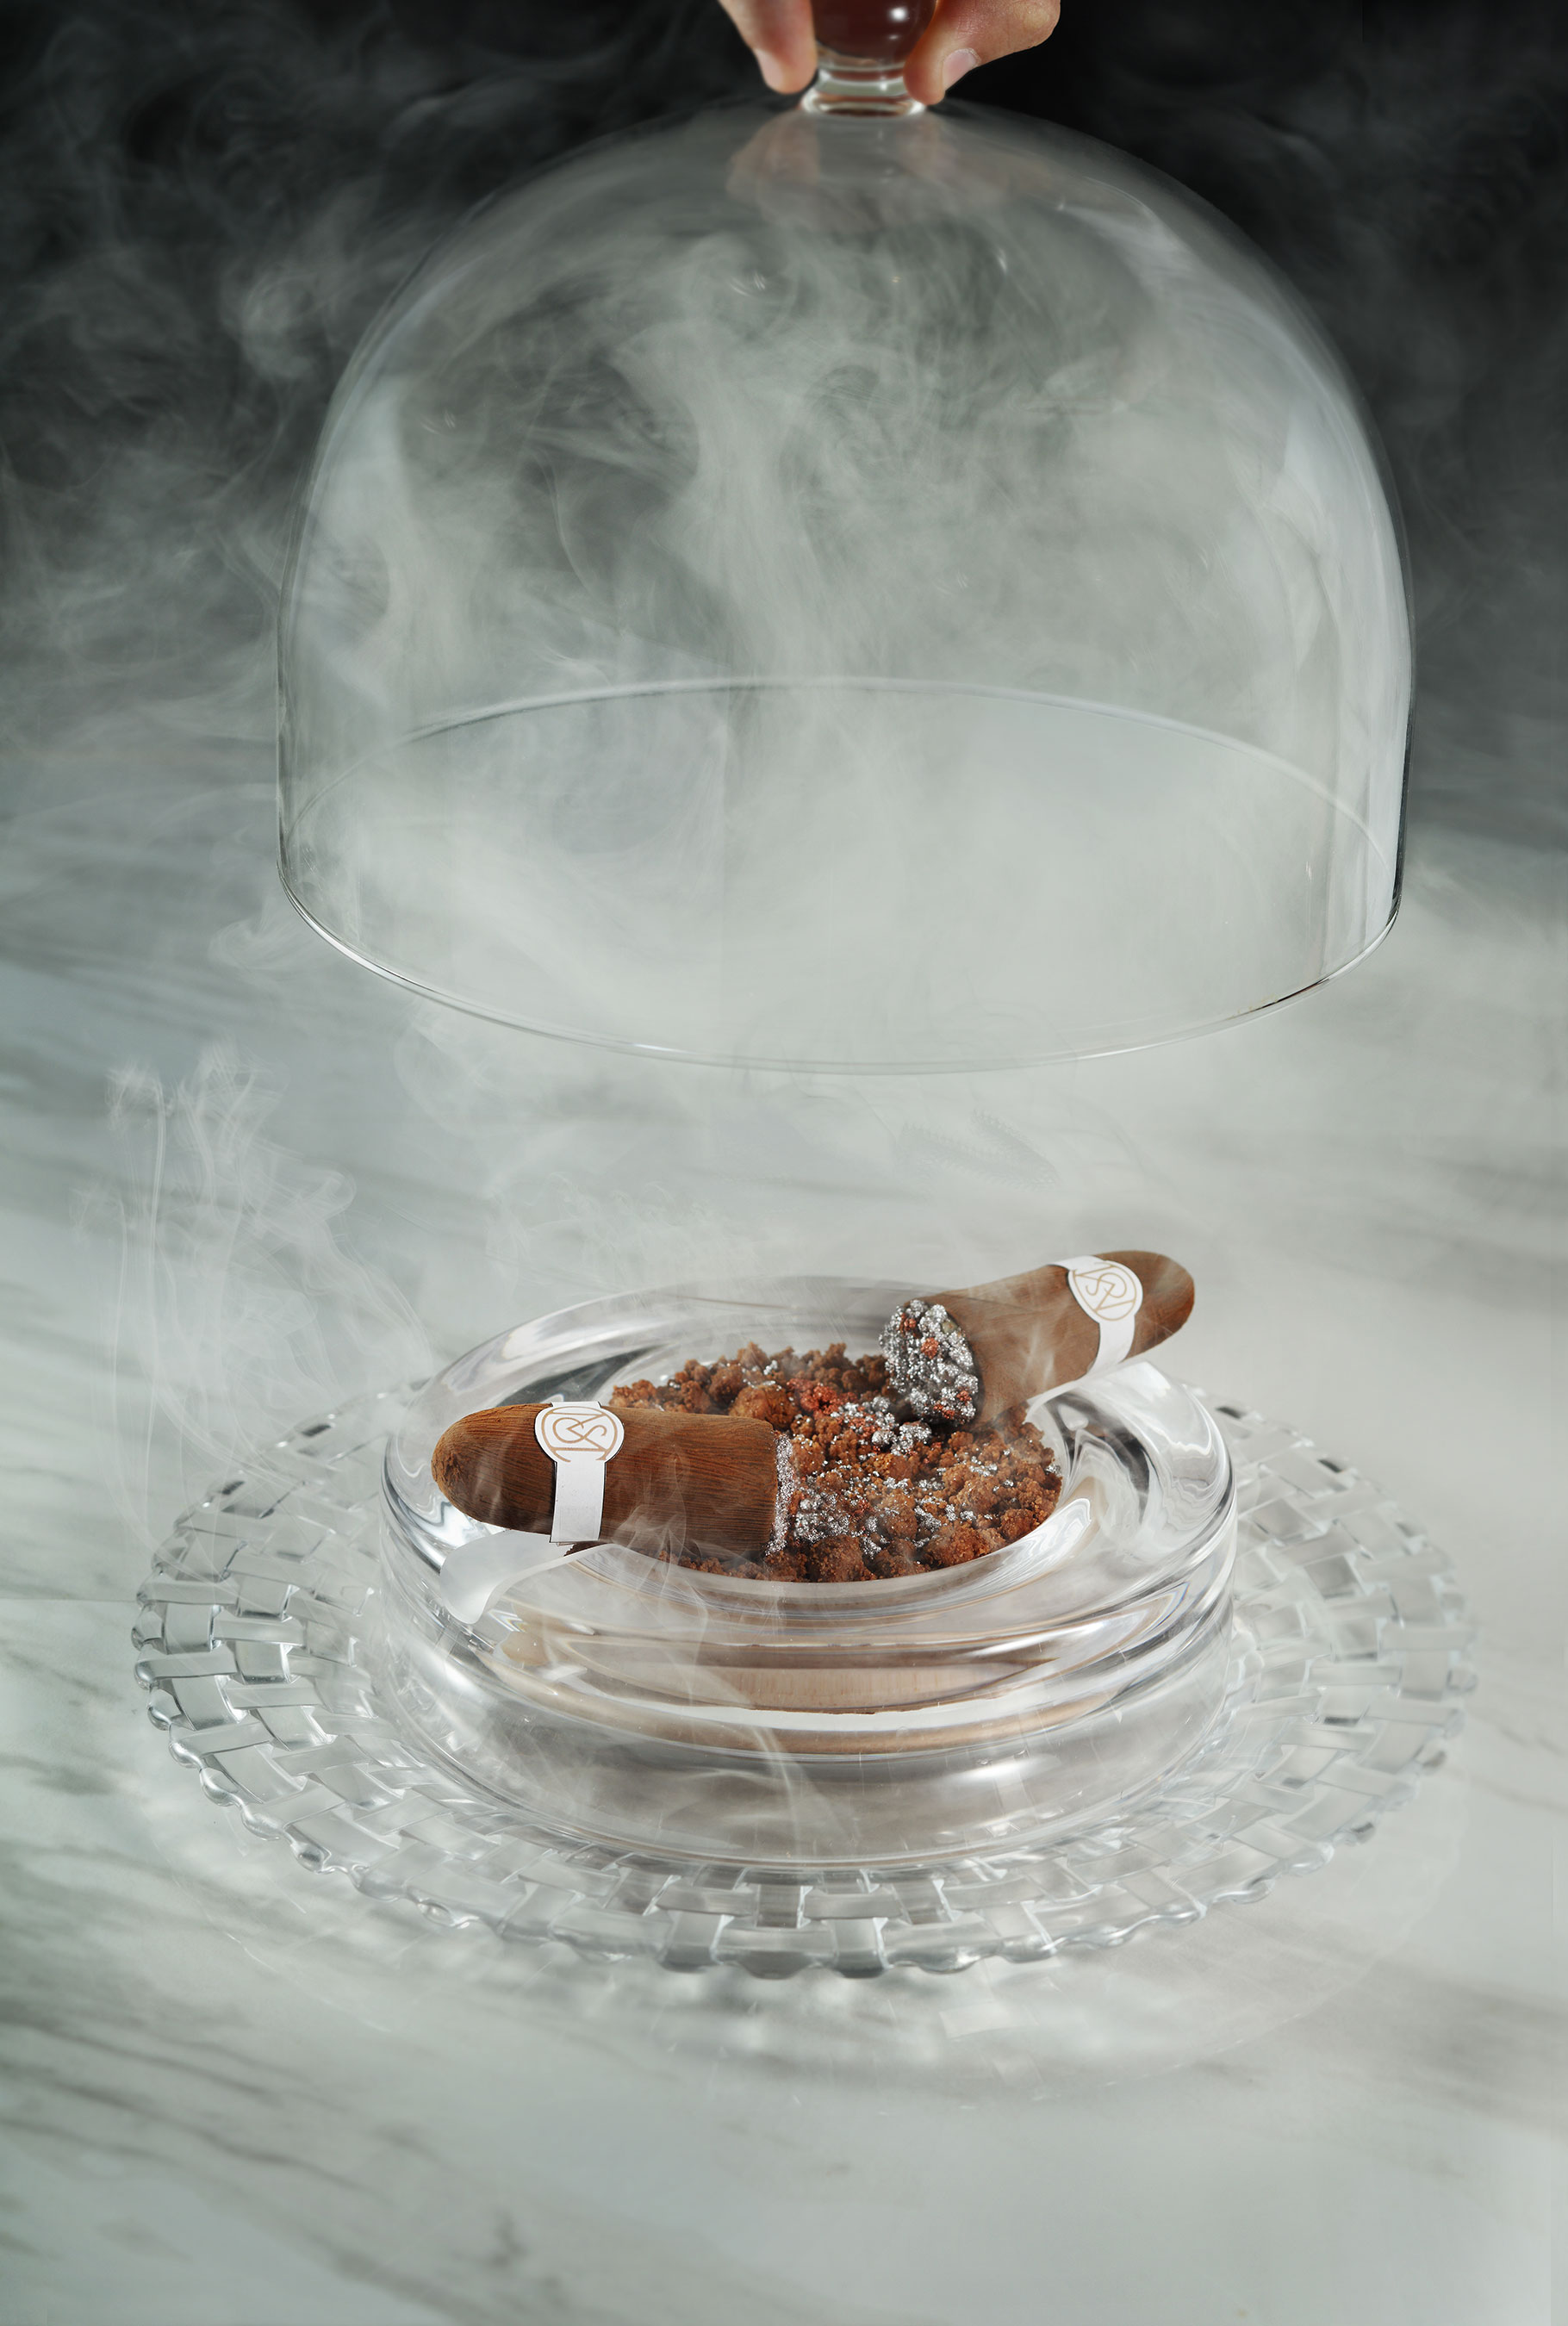 The CIGAR, The Mayfair Supper Club's edible chocolate and hazelnut dessert showpiece arrives hickory-smoked under a glass cloche.